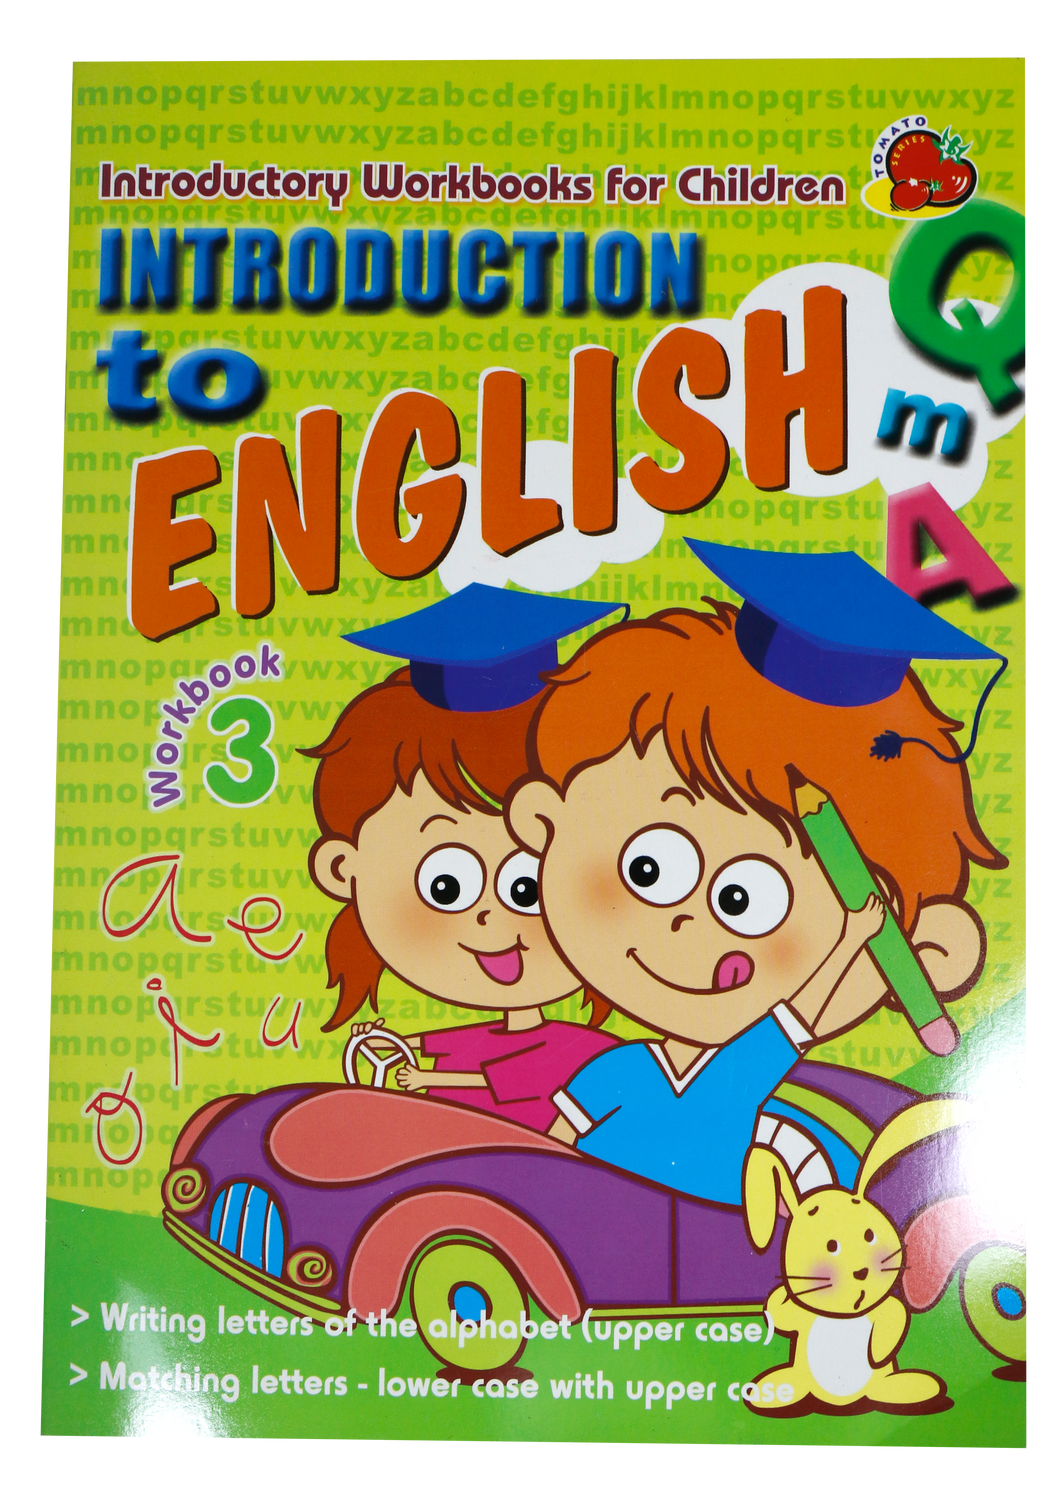 Children's <br> Introduction to English #3 <br> (Upper Case)